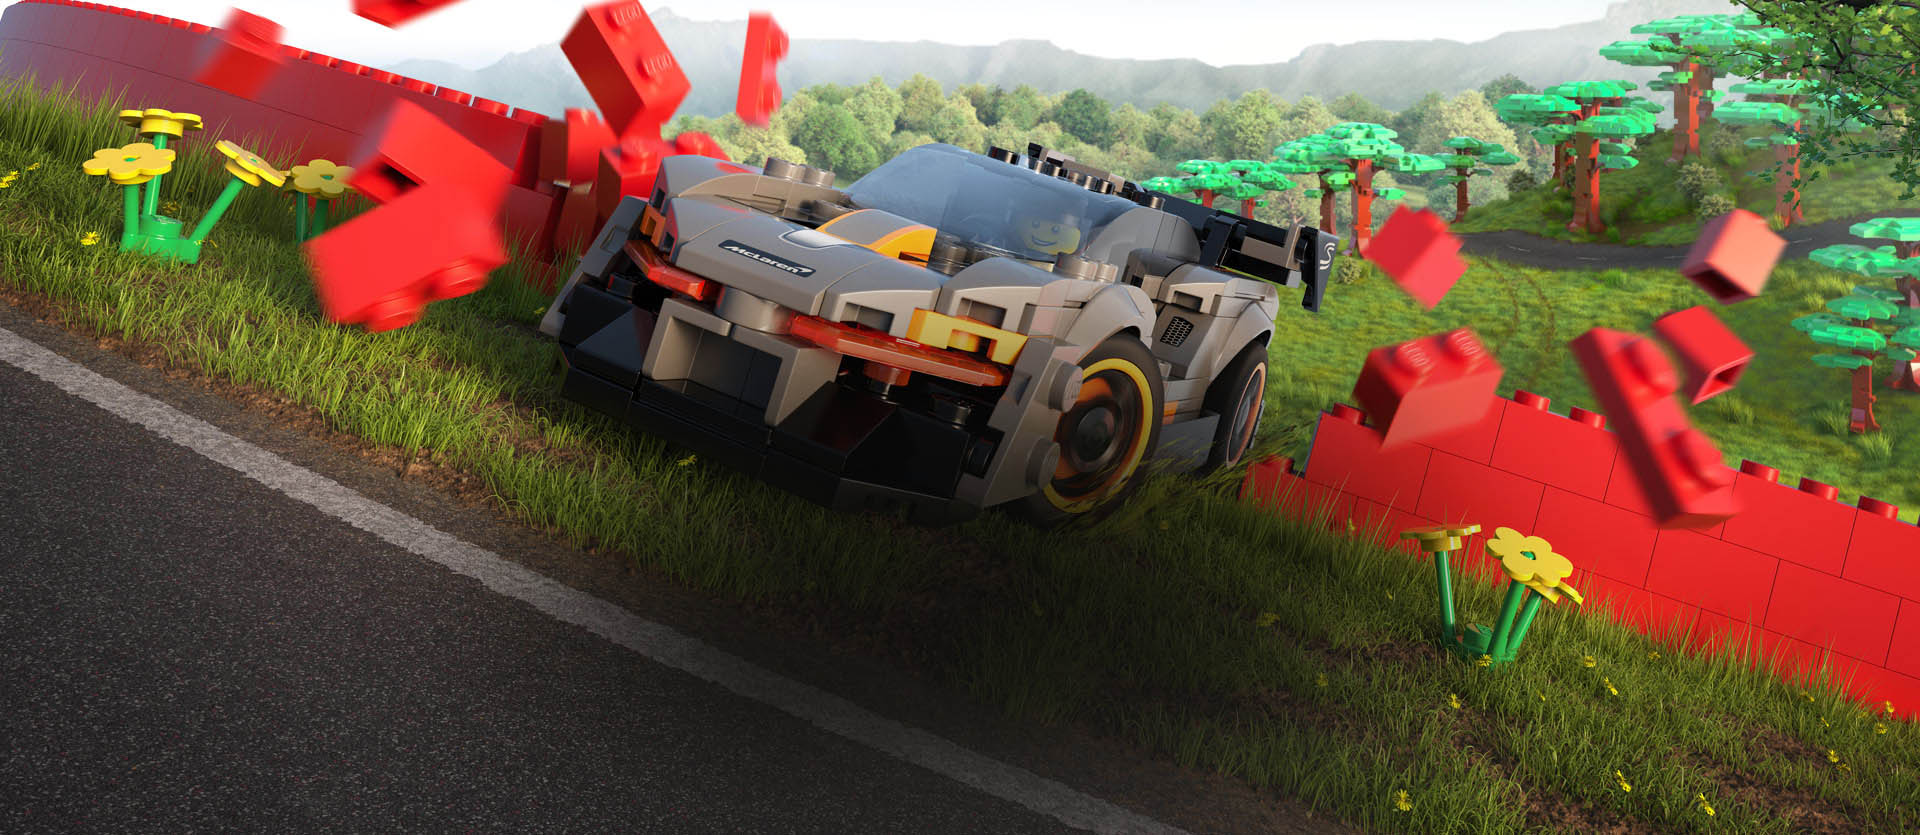 Forza horizon 4 with McLaren bursting through a red LEGO brick wall.